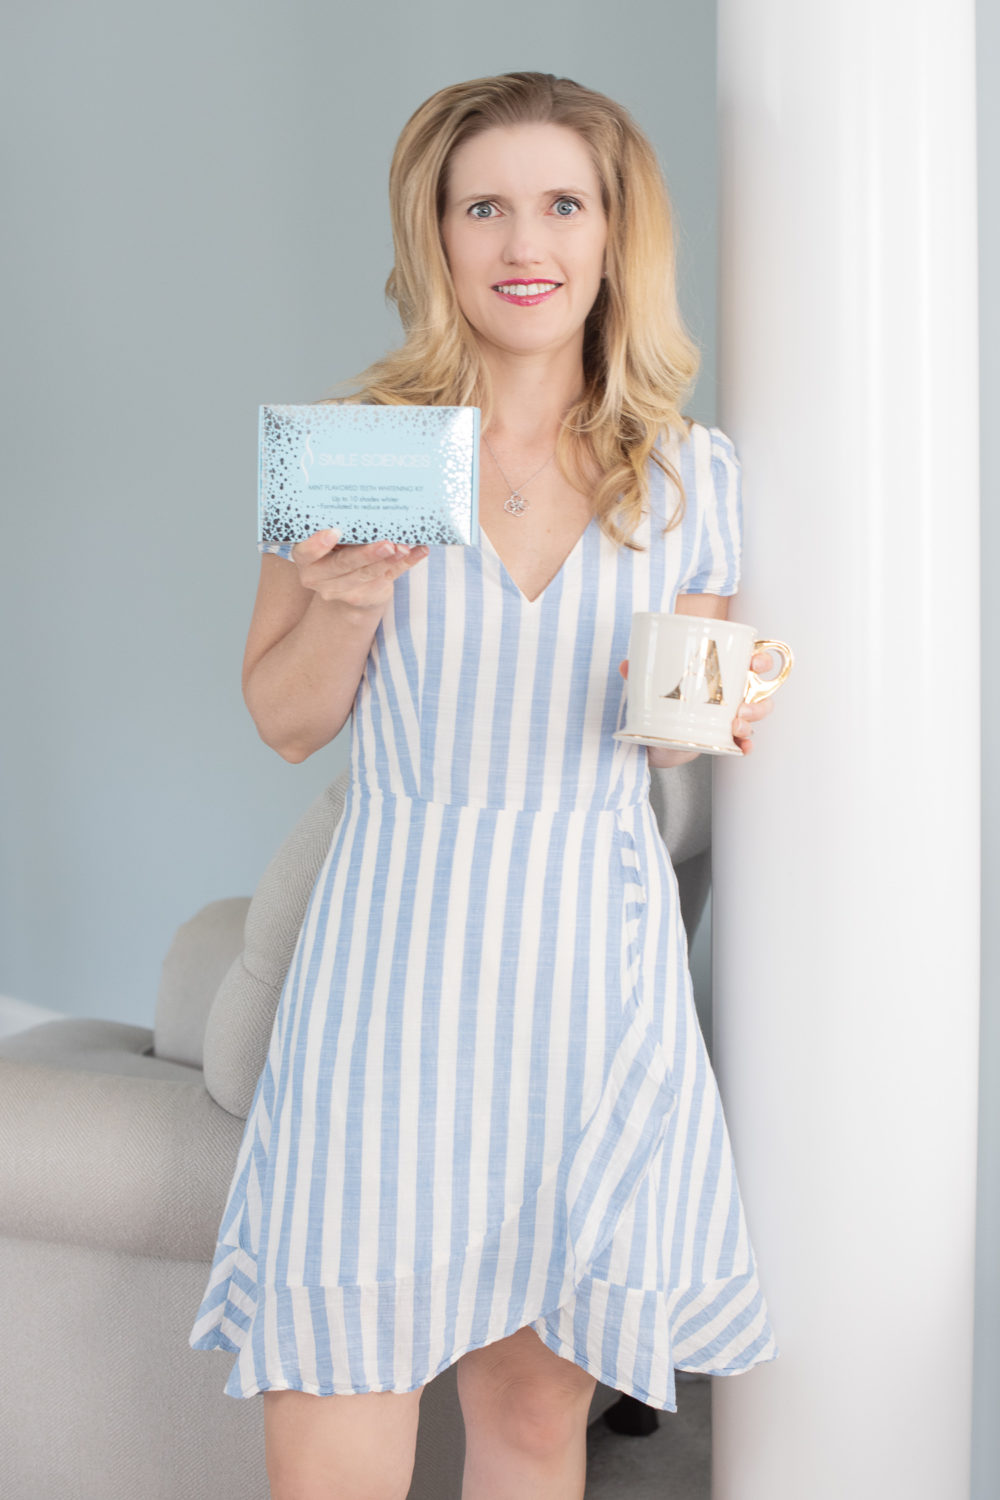 Michigan Petite Fashion and Lifestyle Blog | Smile Sciences Review